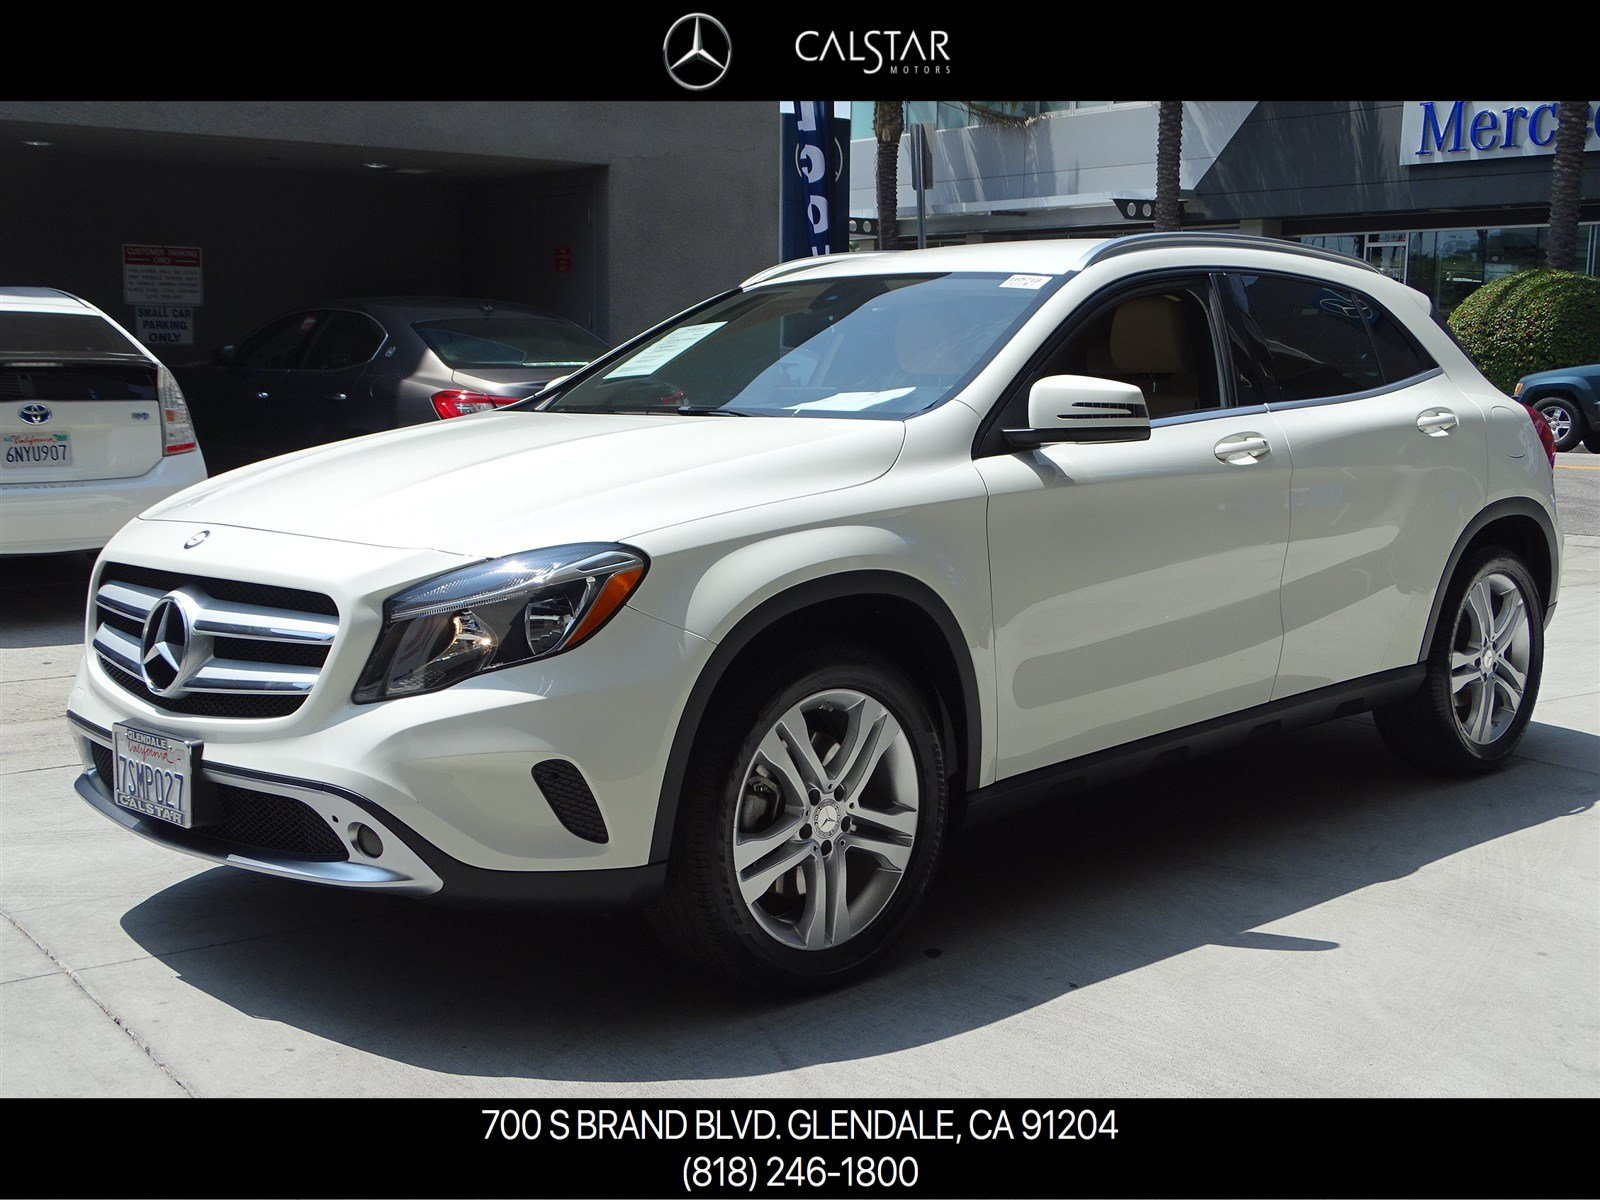 Pre owned 2016 mercedes benz gla gla 250 suv in glendale for Calstar mercedes benz